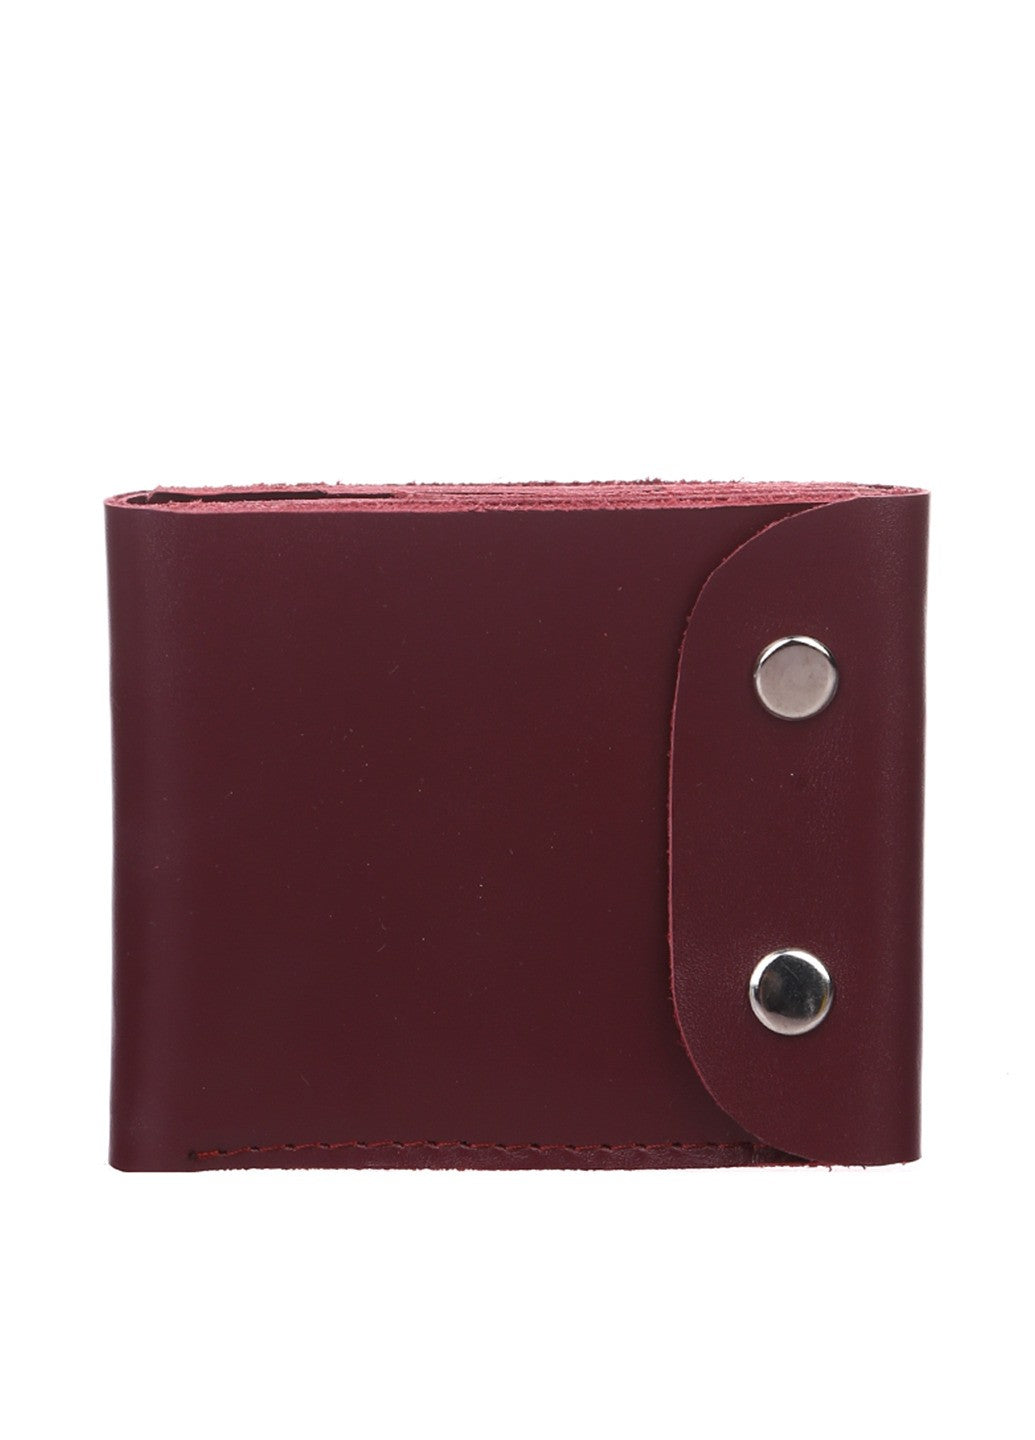 Handmade leather bifold wallet - 1